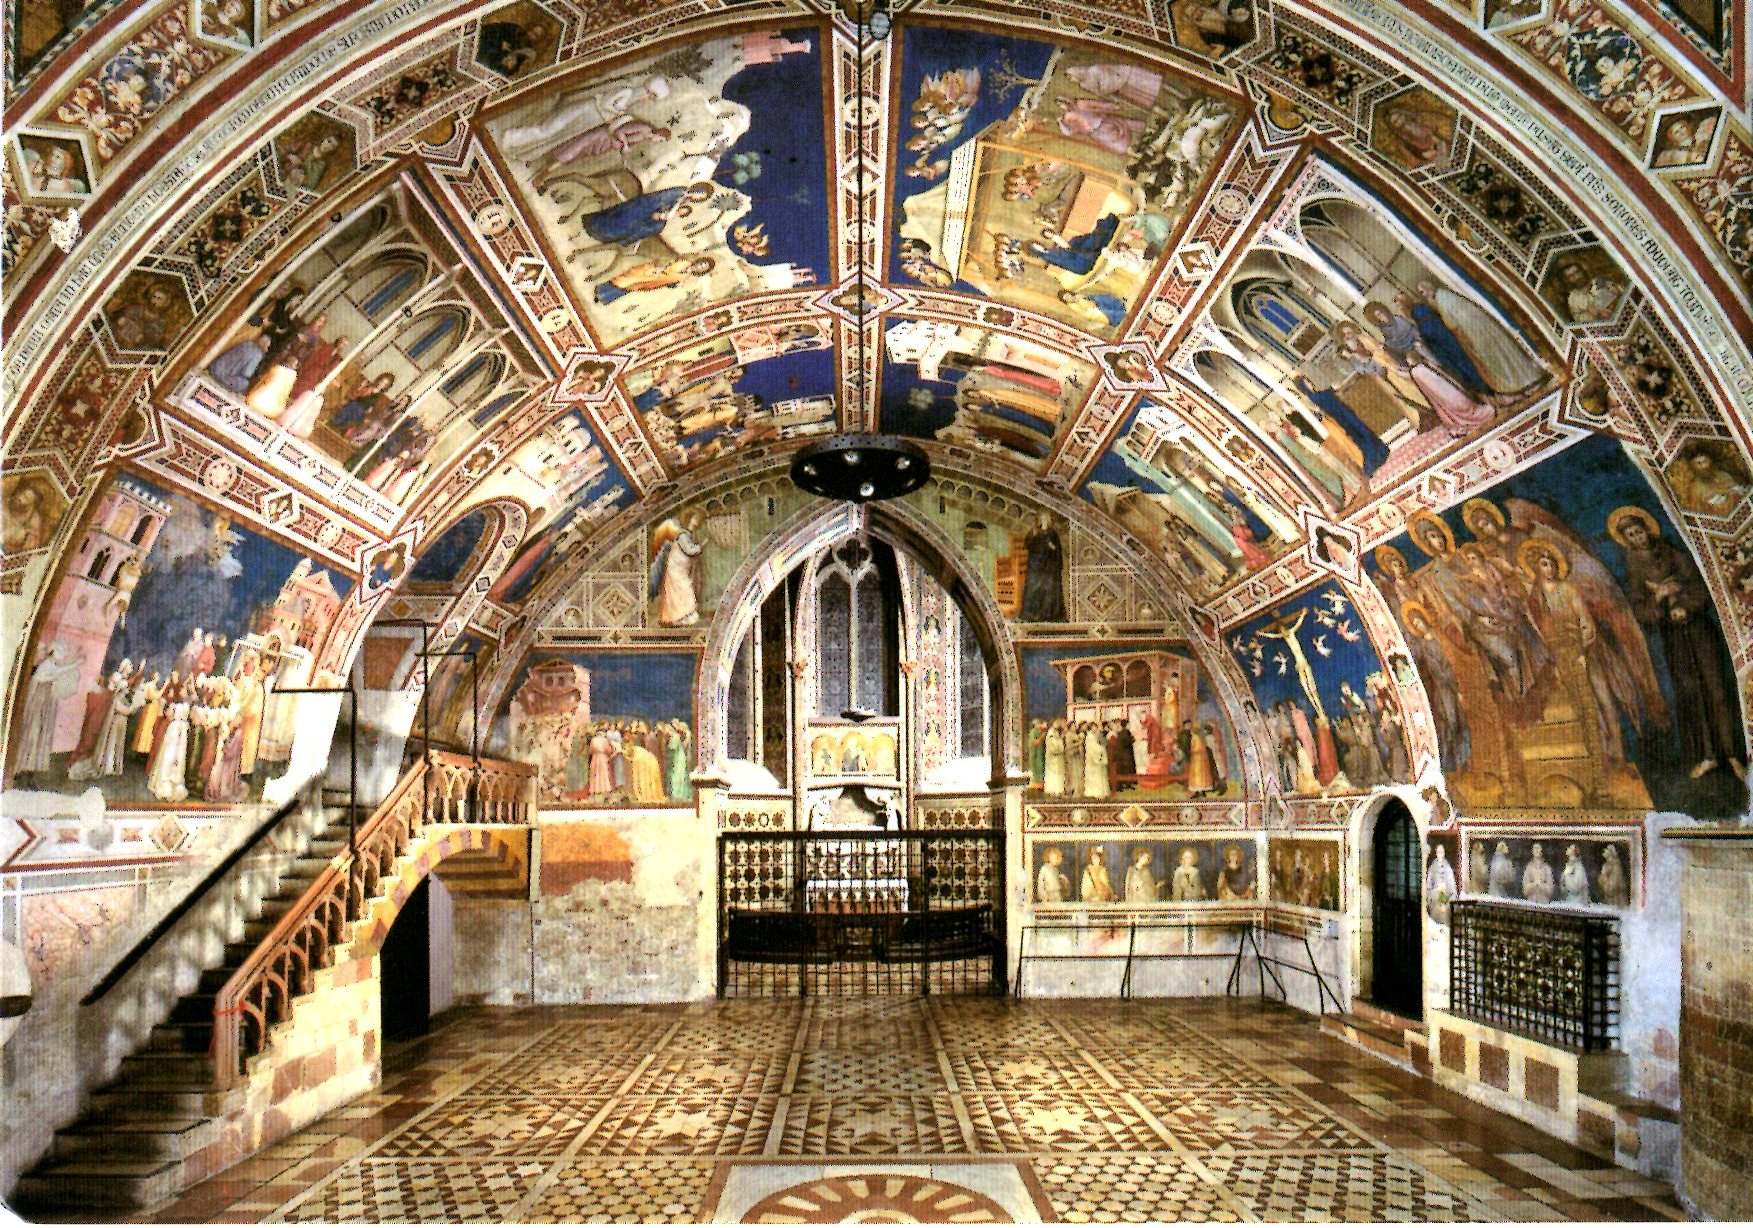 Tomb of St Francis Assisi, basilica-of-saint-francis-lower-level.jpg